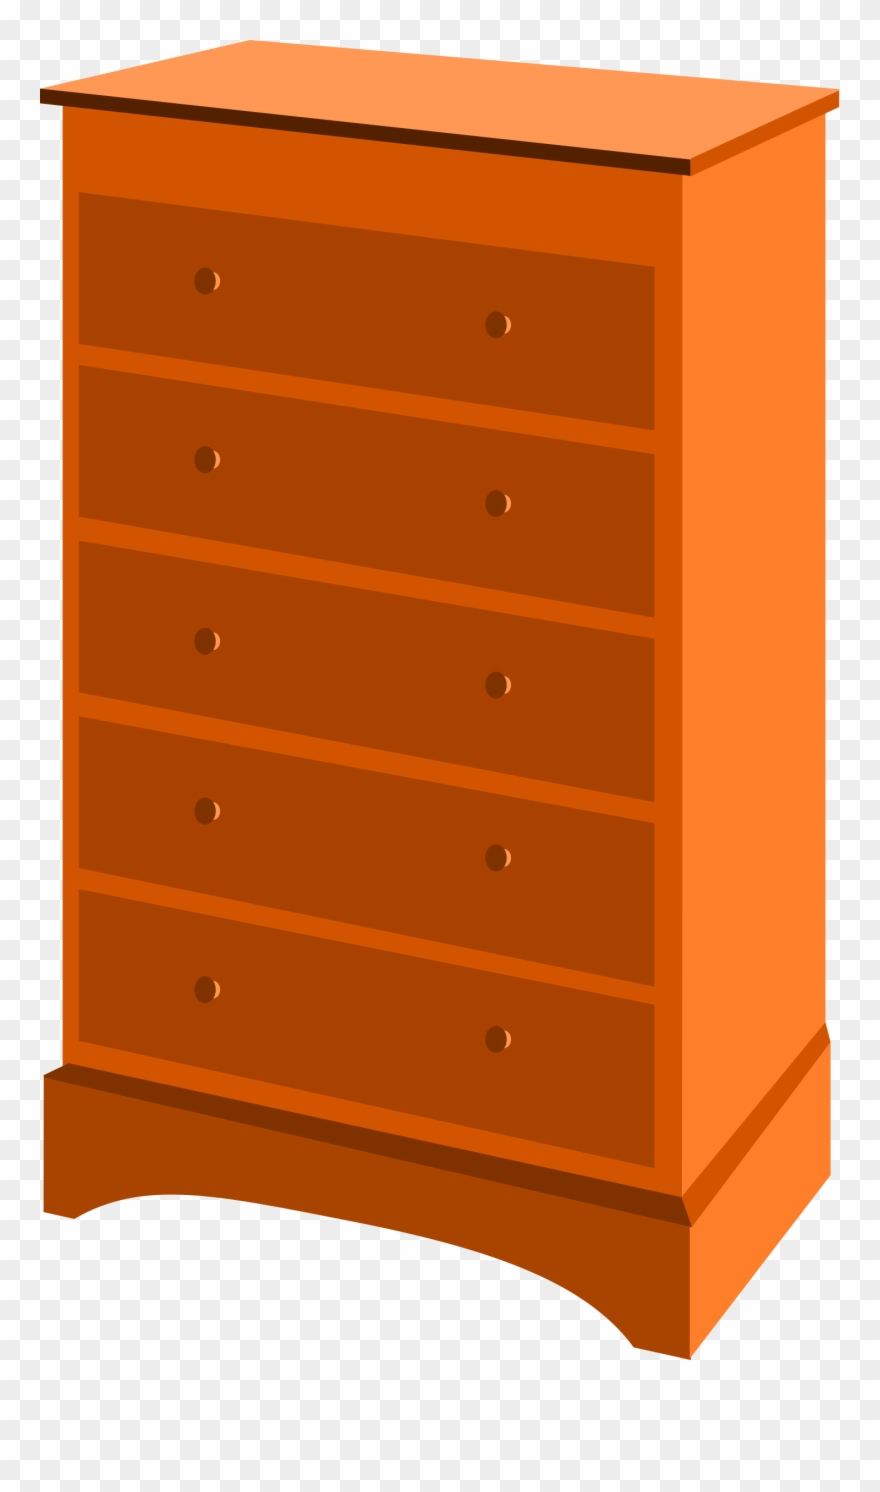 Chest of drawers clipart image royalty free stock Chest Of Drawers - Chest Of Drawers Clipart - Png Download (#1995667 ... image royalty free stock